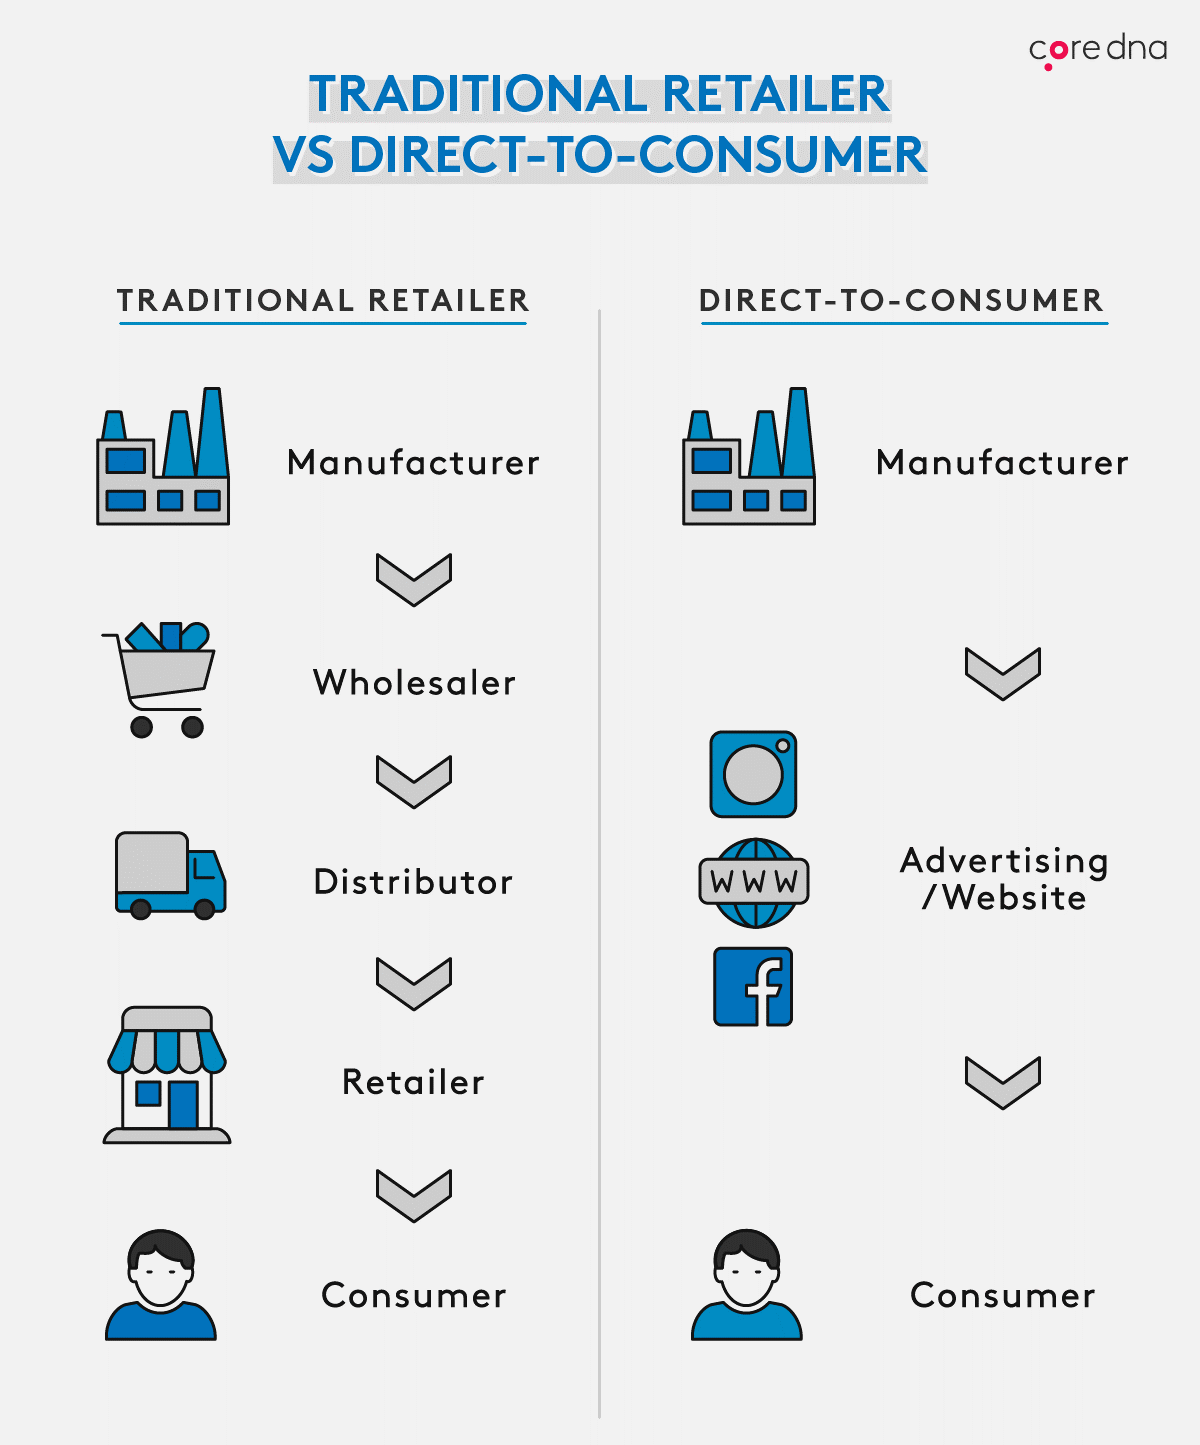 Traditional retailer vs direct-to-consumer